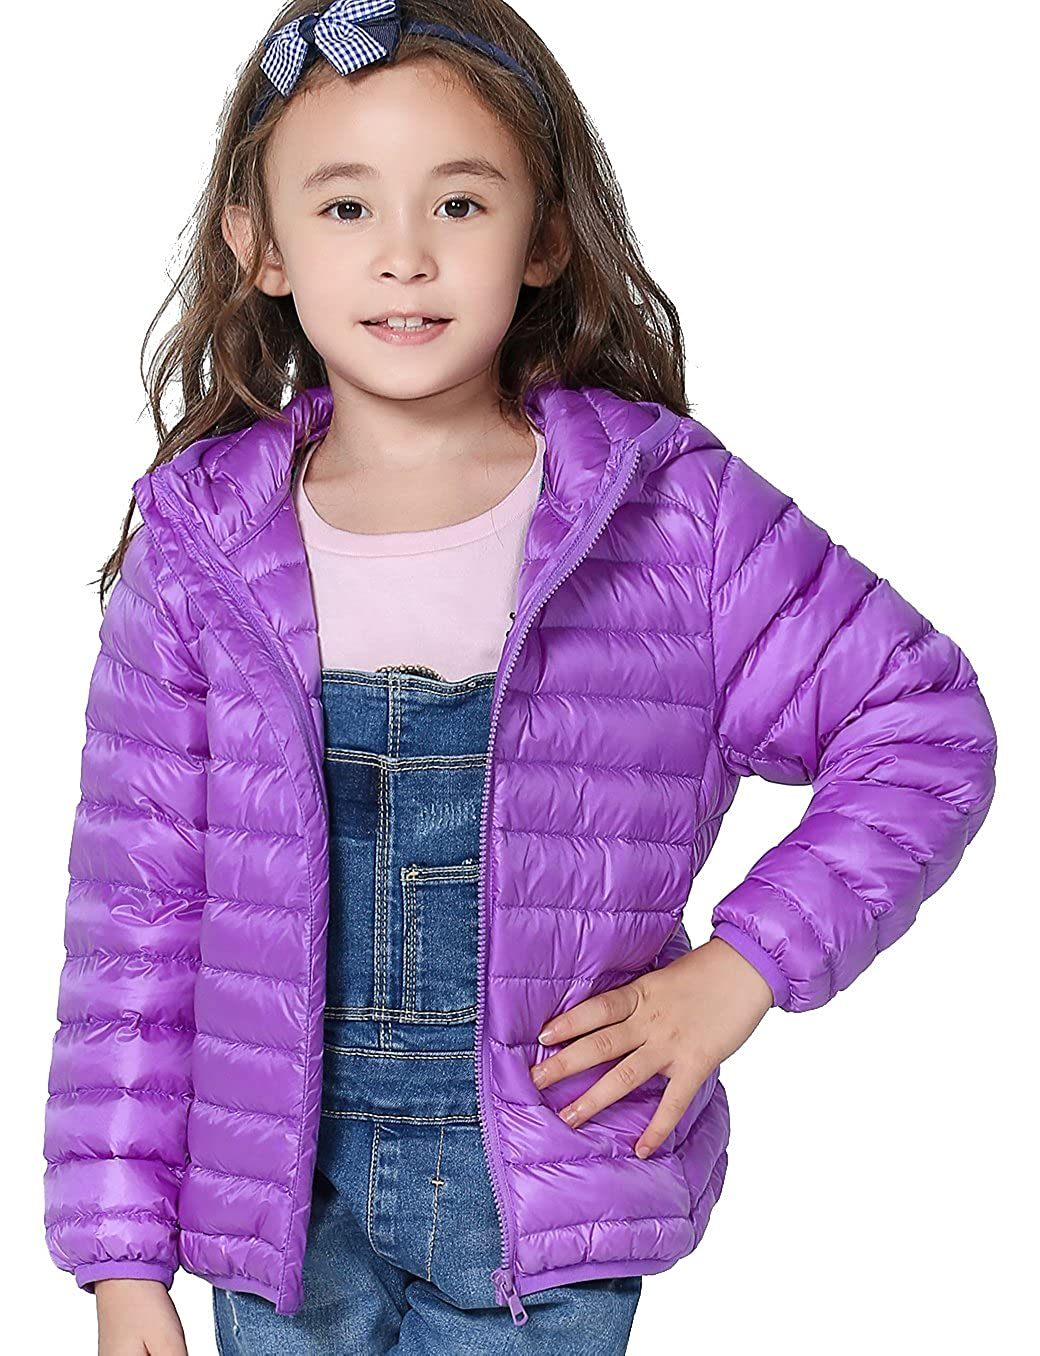 CHERRY CHICK Kid's Candy Color Packable Down Hooded Jacket 16080220